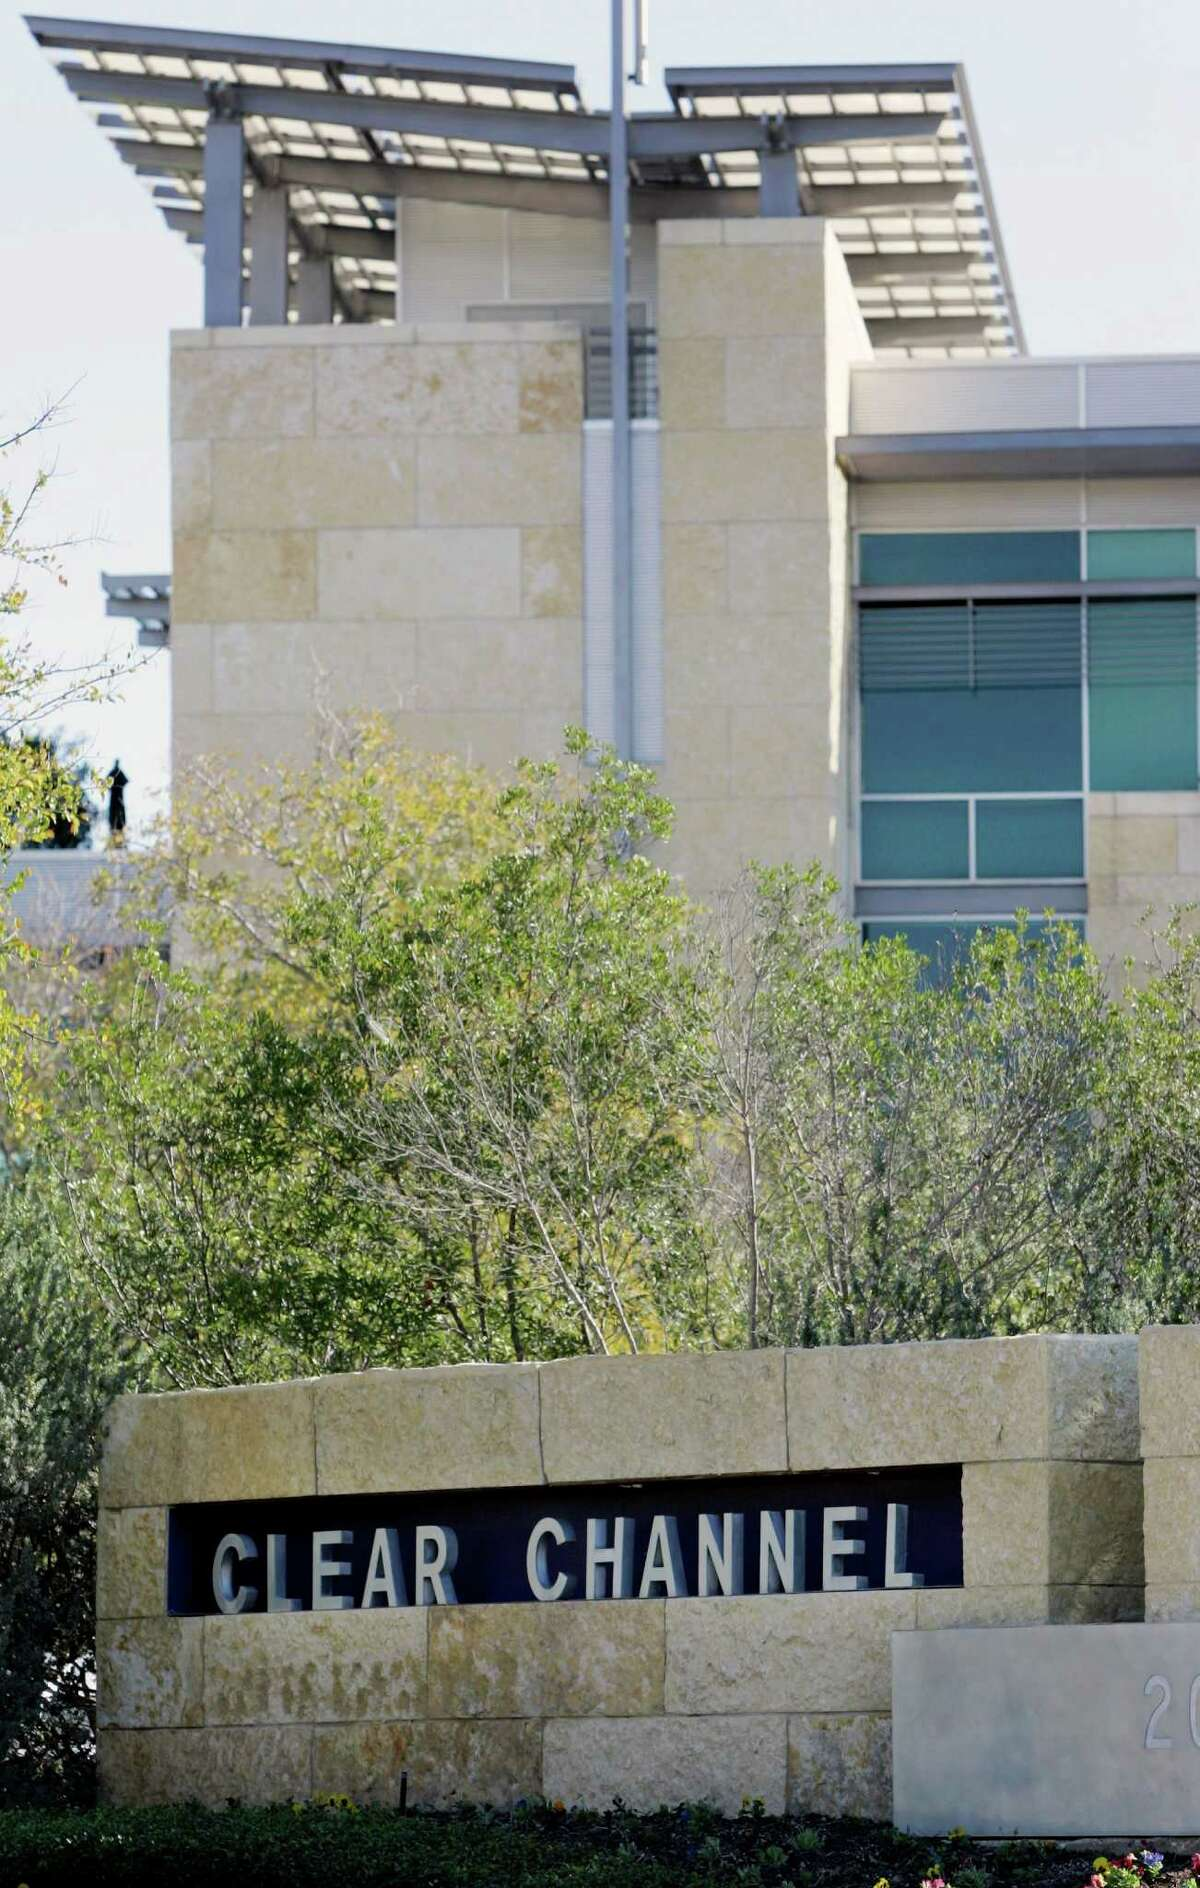 The headquarters for Clear Channel Communications, a privately held radio broadcasting and outdoor advertising.